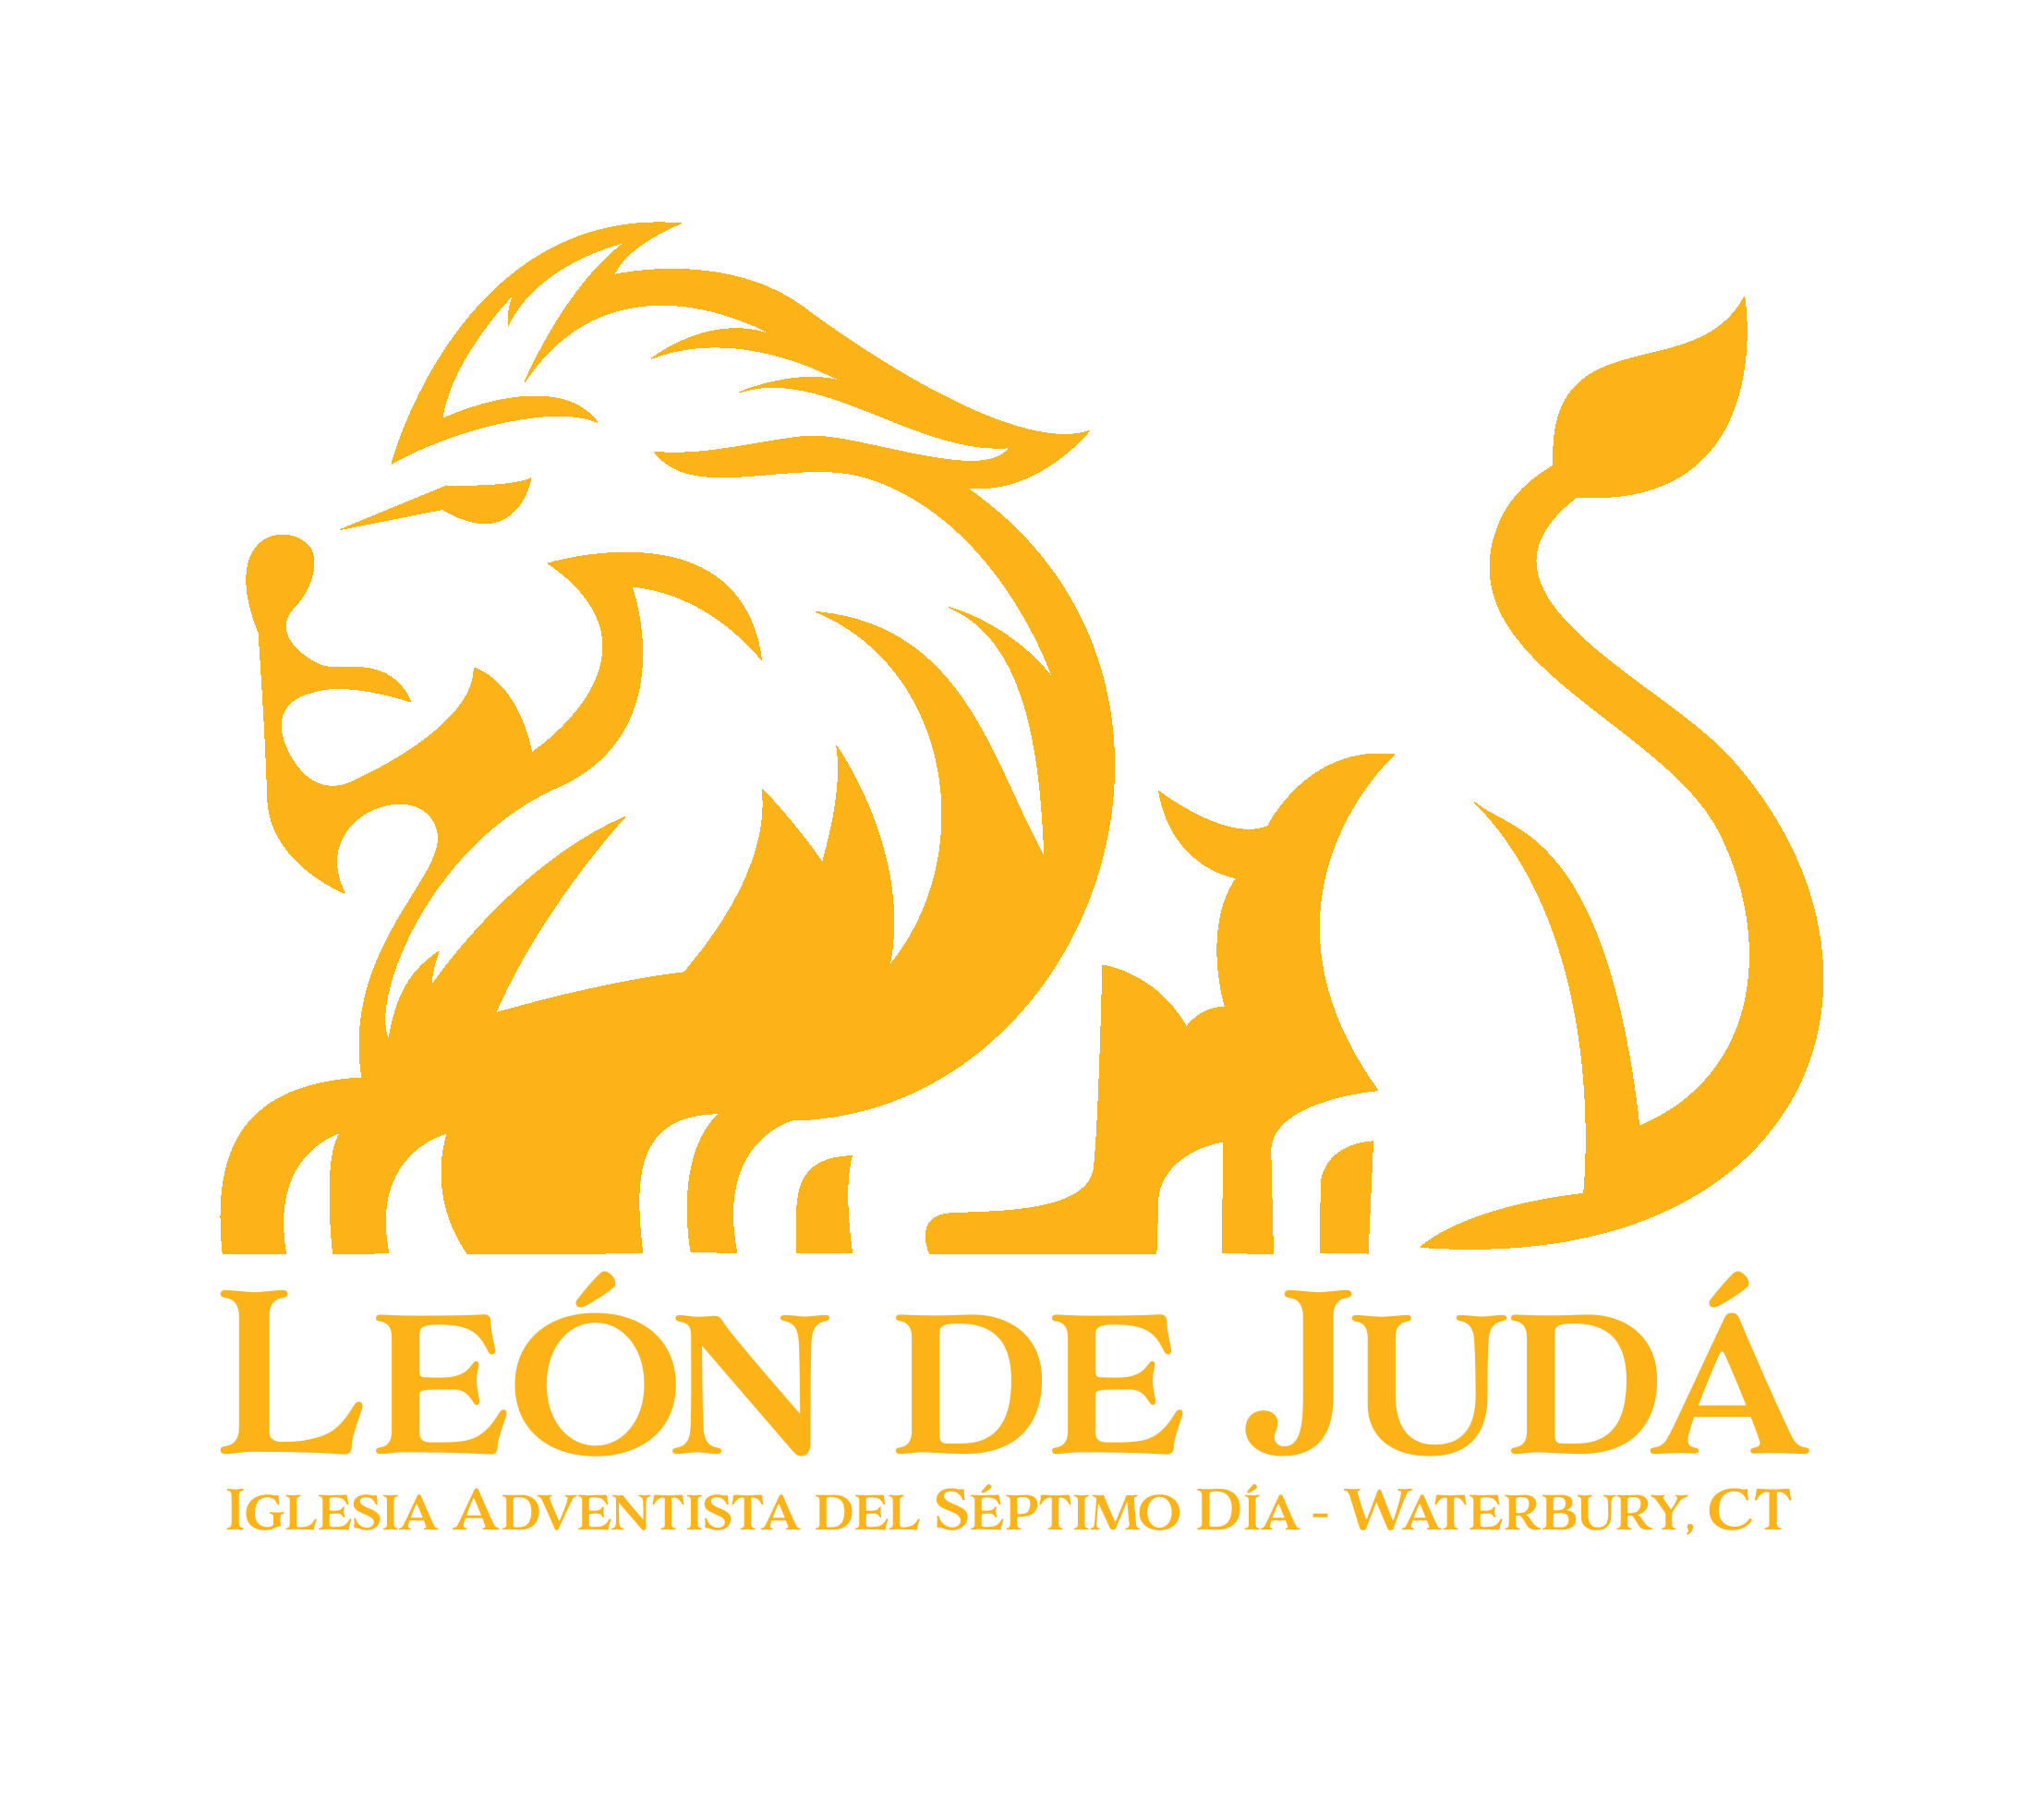 León de Judá | Lion of Judah